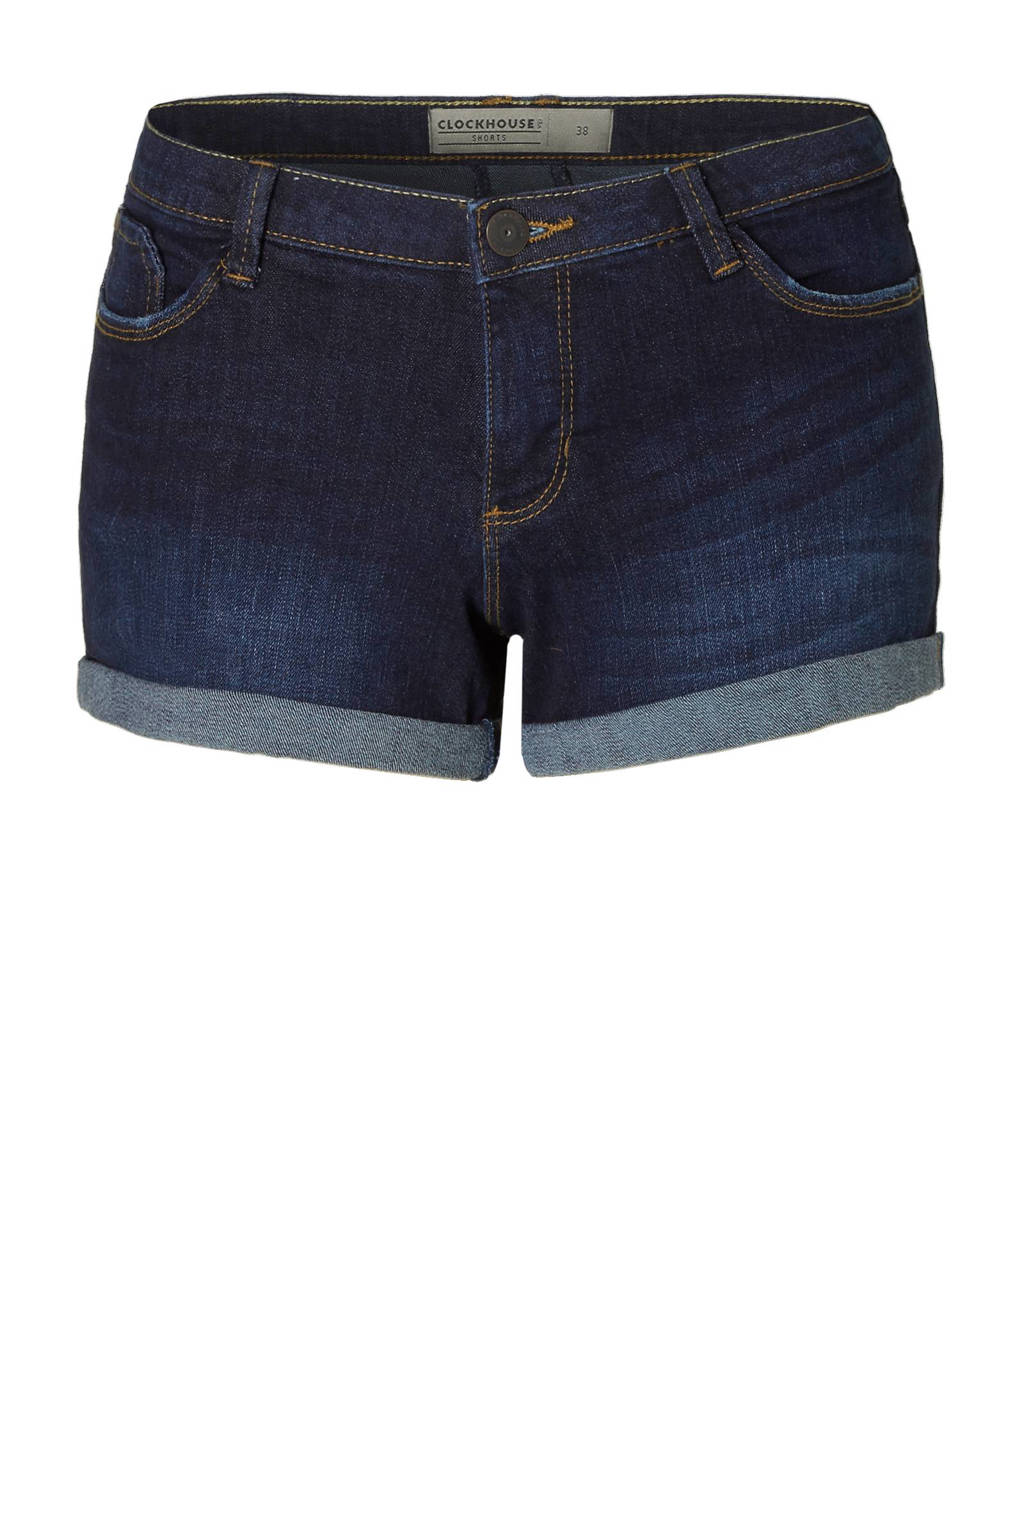 C&A Clockhouse slim fit jeans short donkerblauw, Donkerblauw